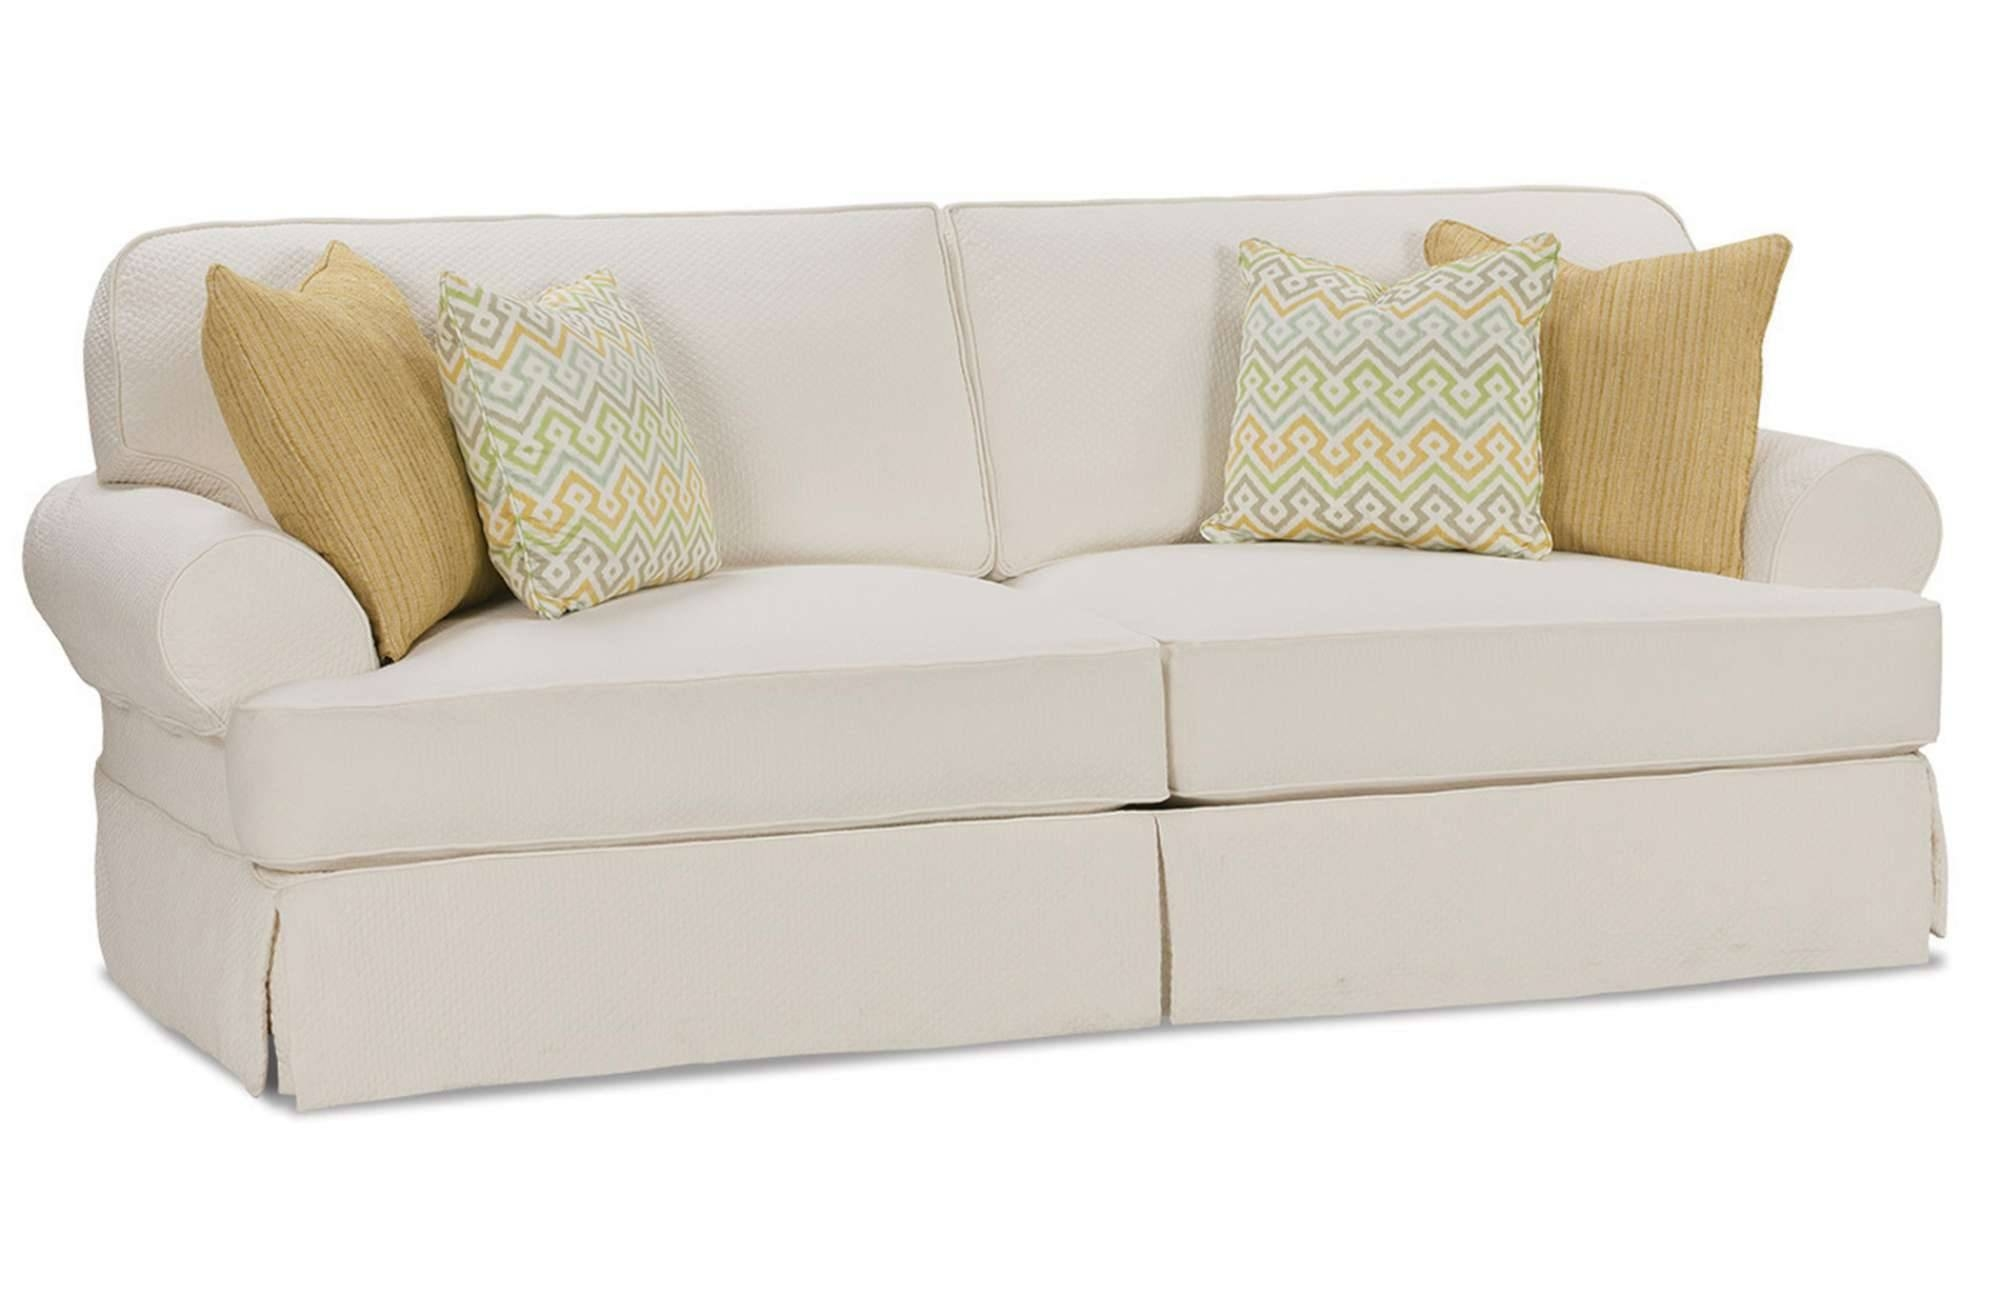 Chair & Sofa: Usual Slipcovered Sofas For Classic Sofa Idea for Washable Sofas (Image 2 of 30)